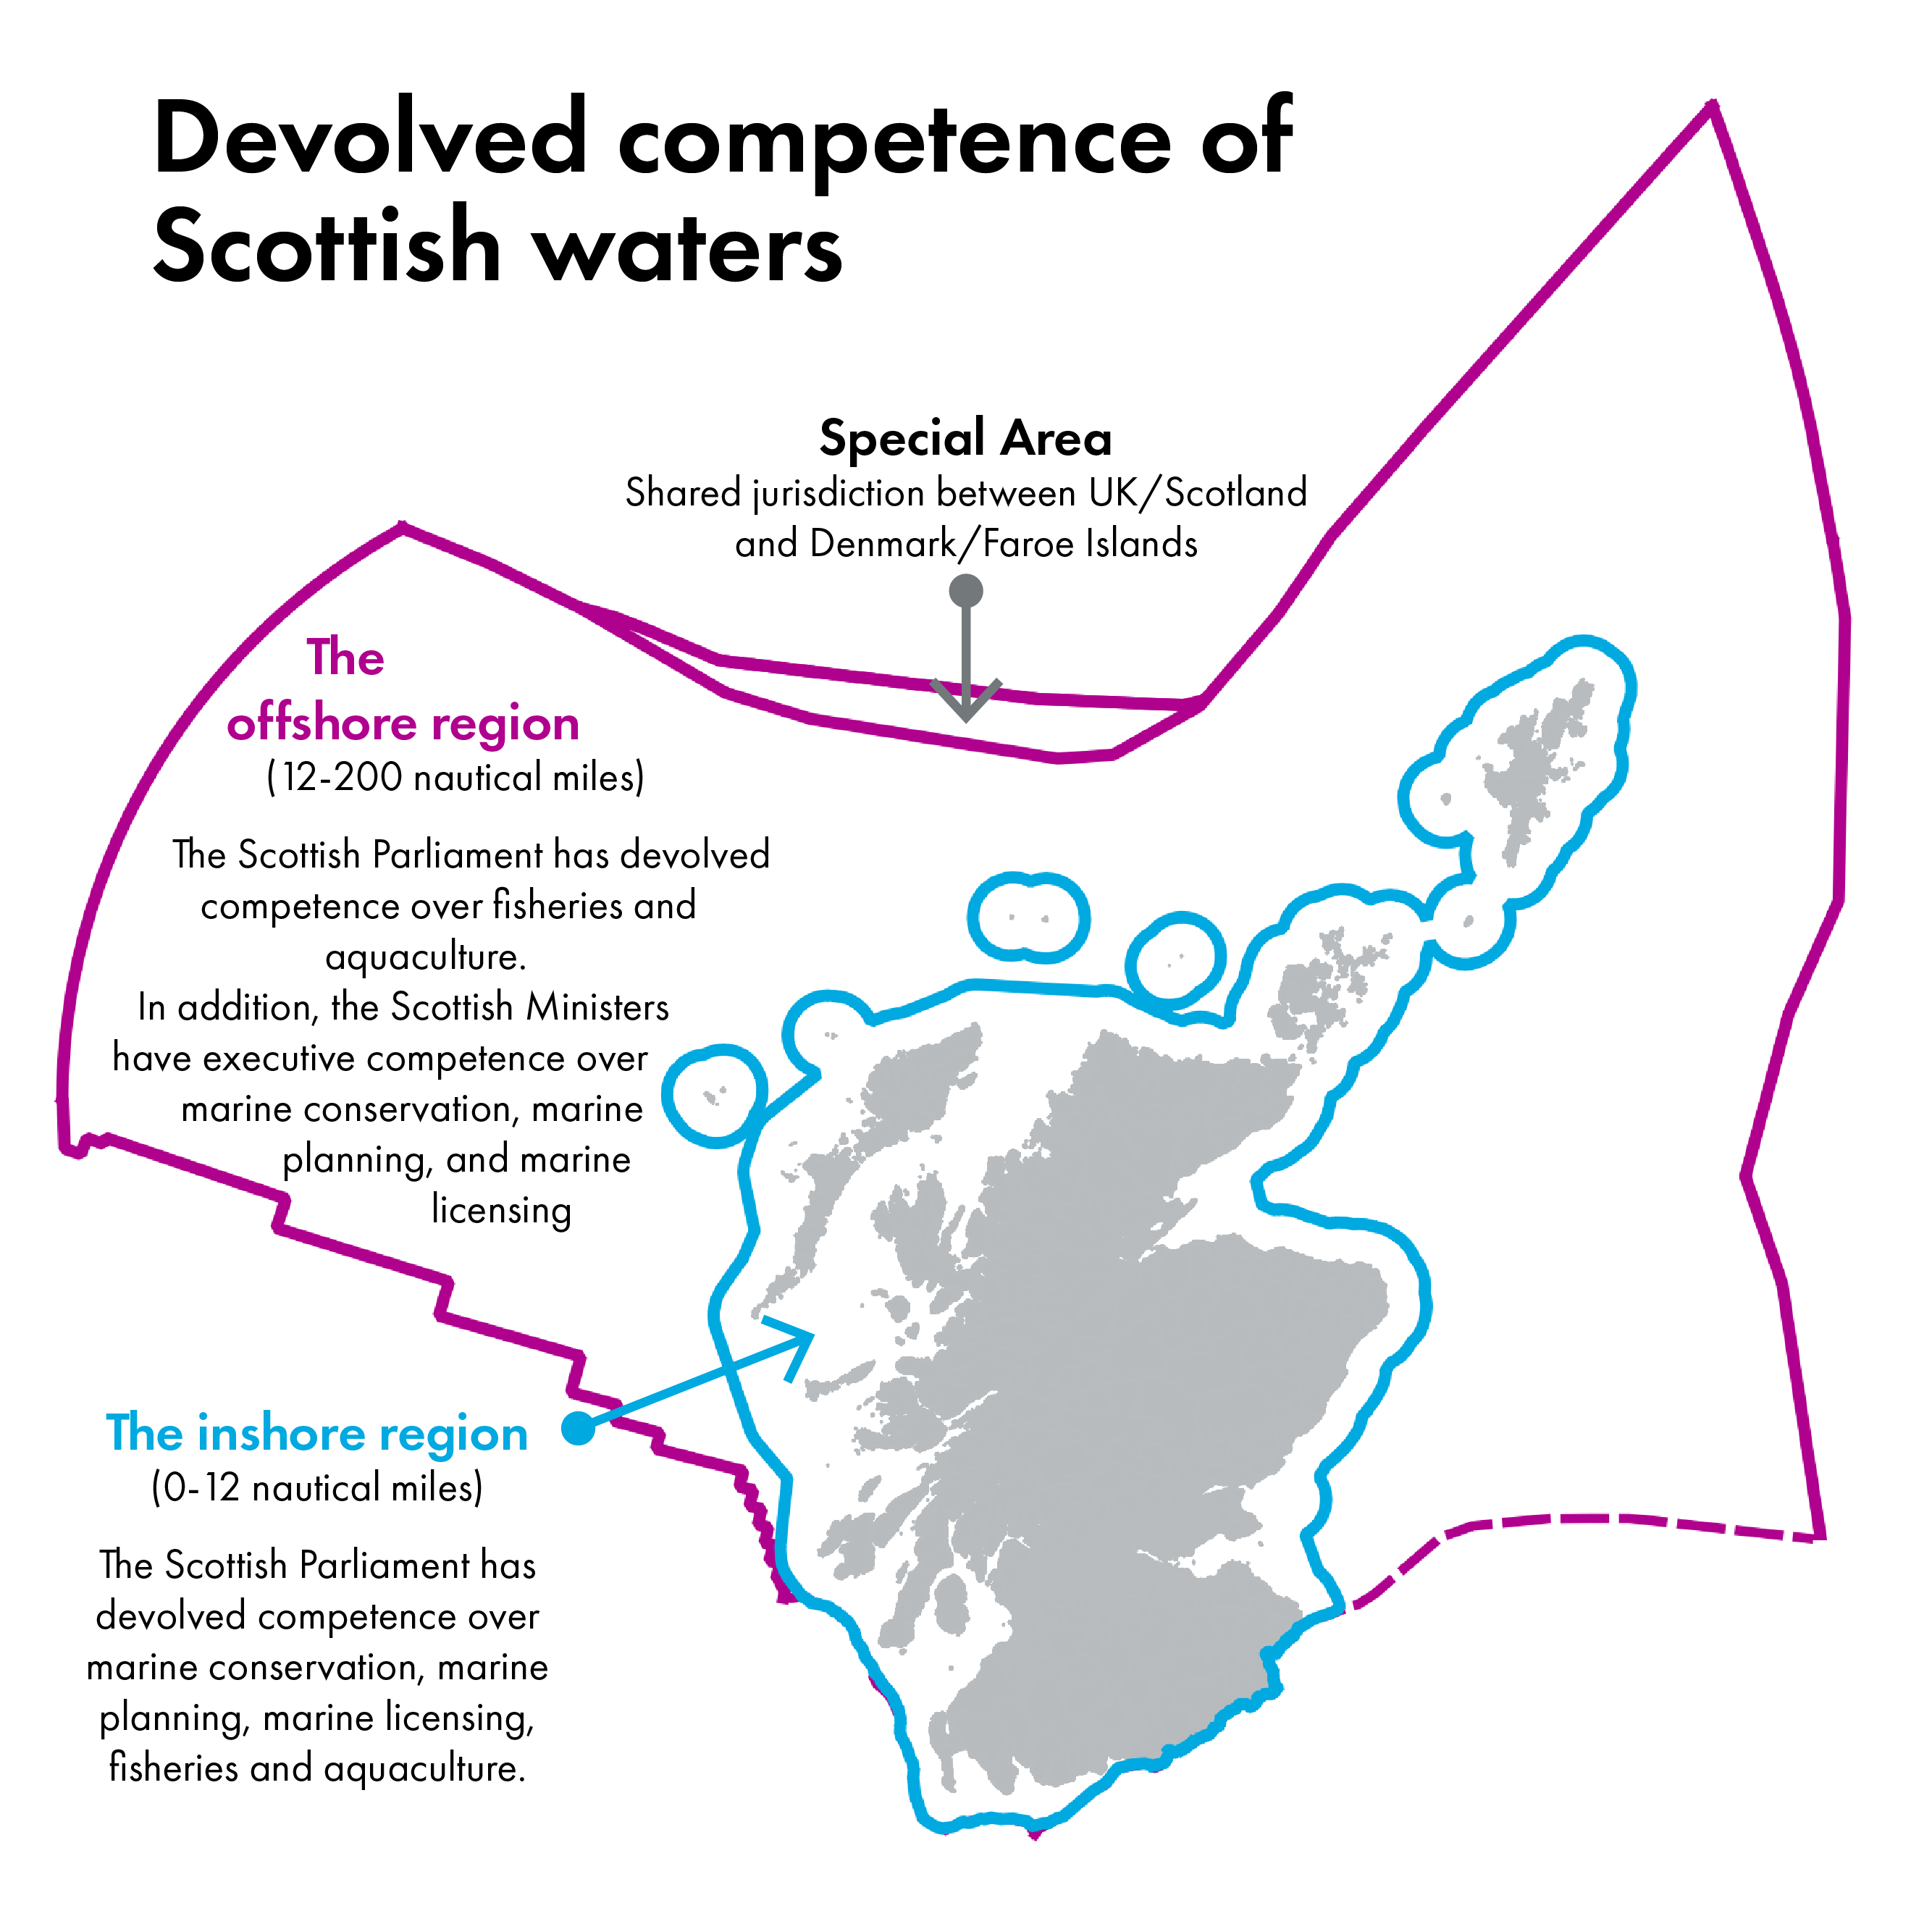 Map showing Scotland's marine boundaries and devolved competence of Scotland's waters.